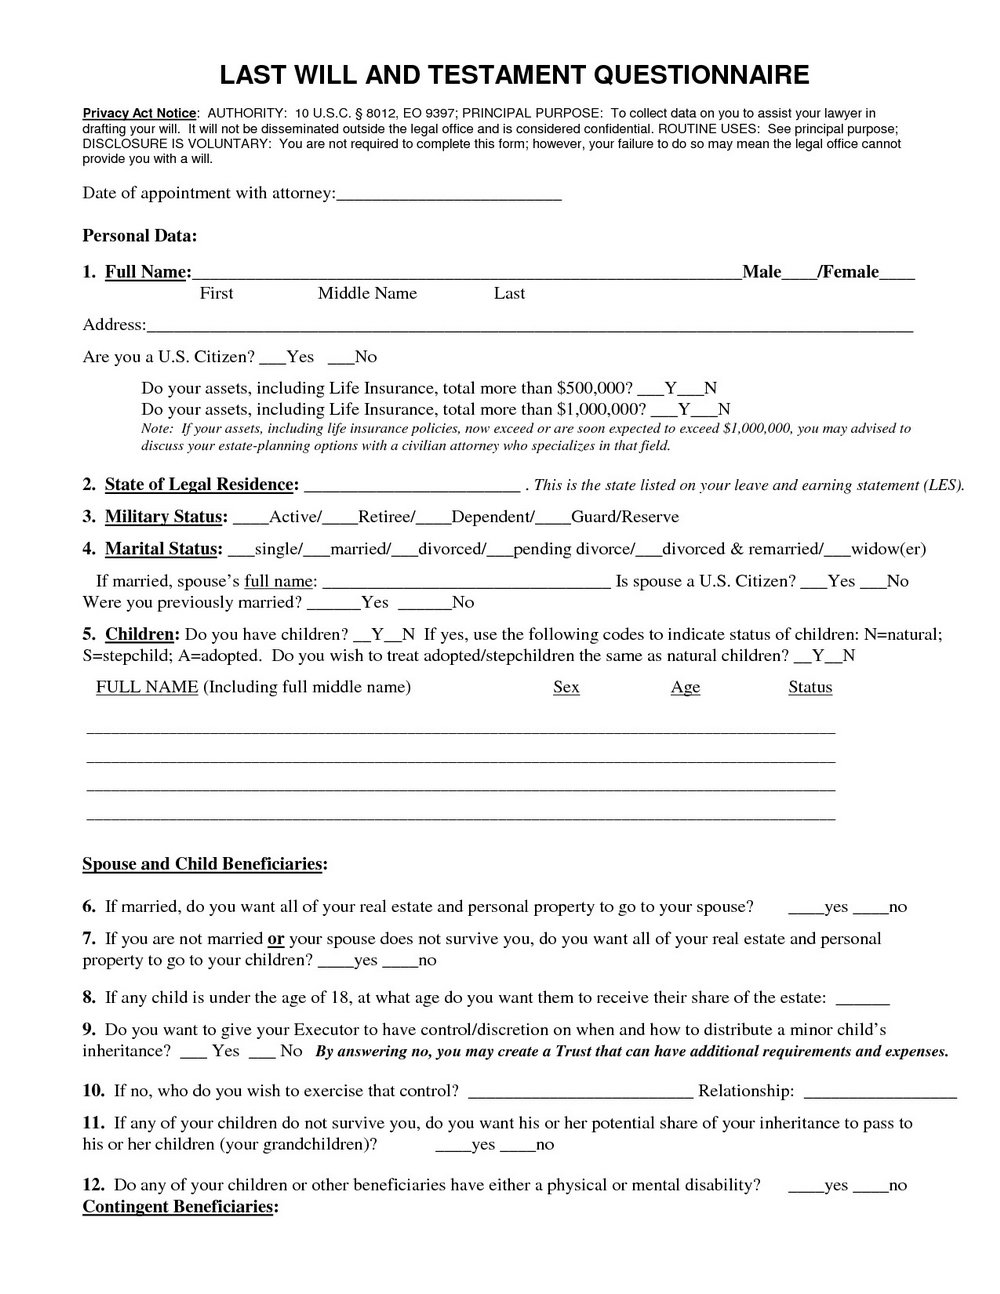 Free Printable Last Will And Testament Blank Forms